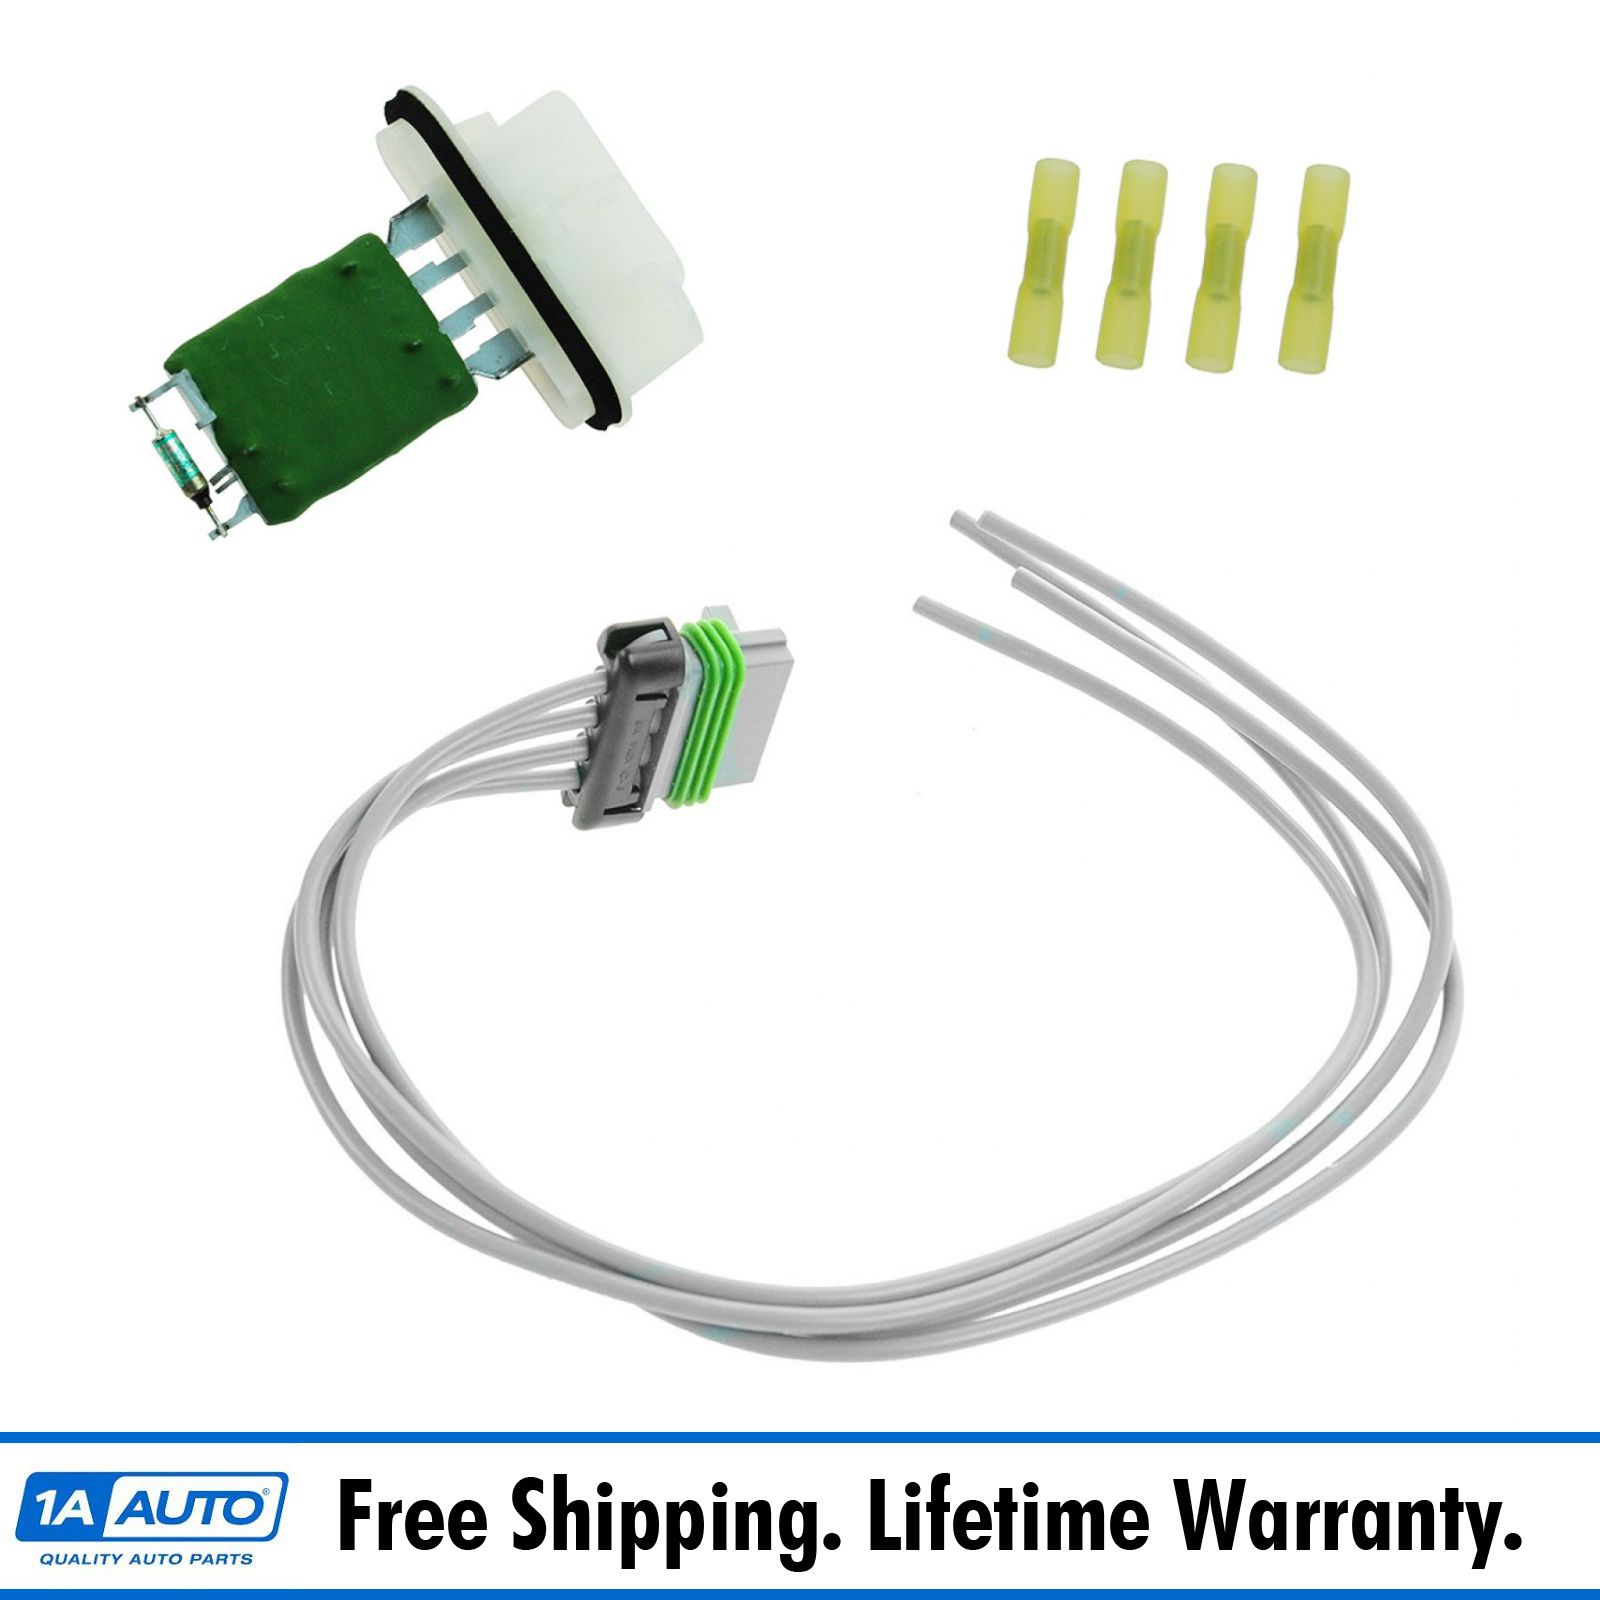 Chevy Colorado Blower Resistor: Dorman Heater Blower Motor Resistor W Pigtail Harness For